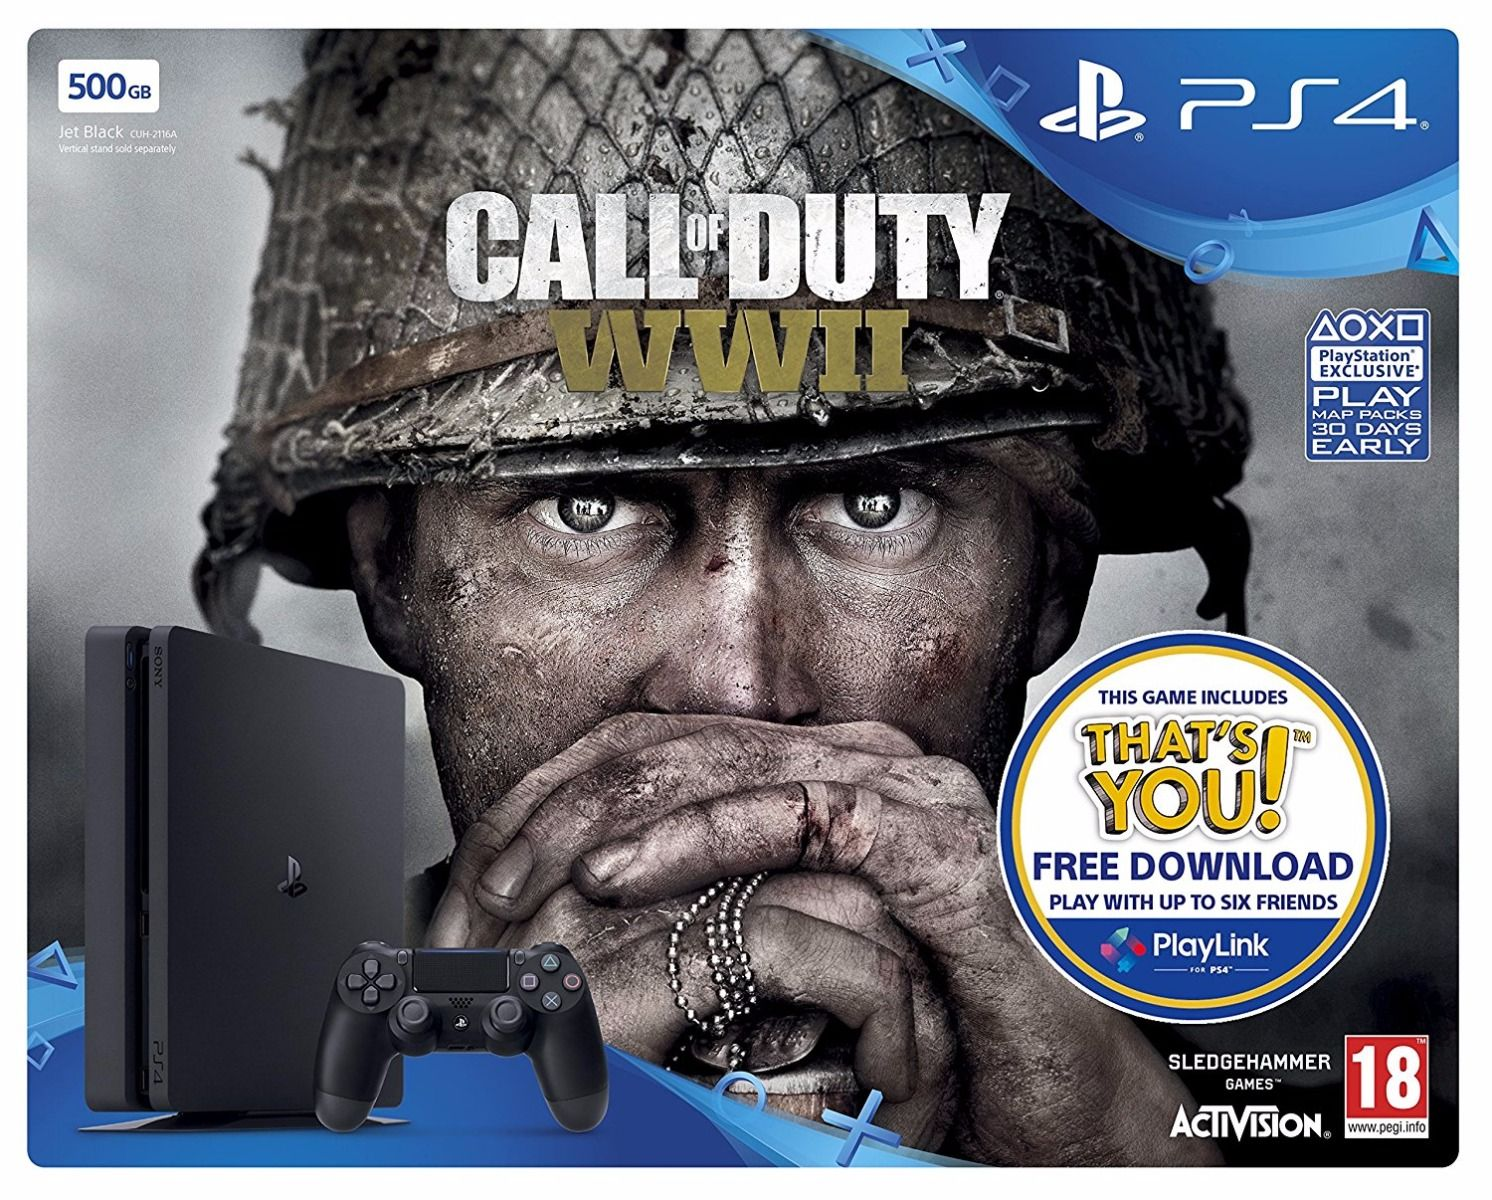 PlayStation 4 500GB Console with Call of Duty: World War II (PS4)